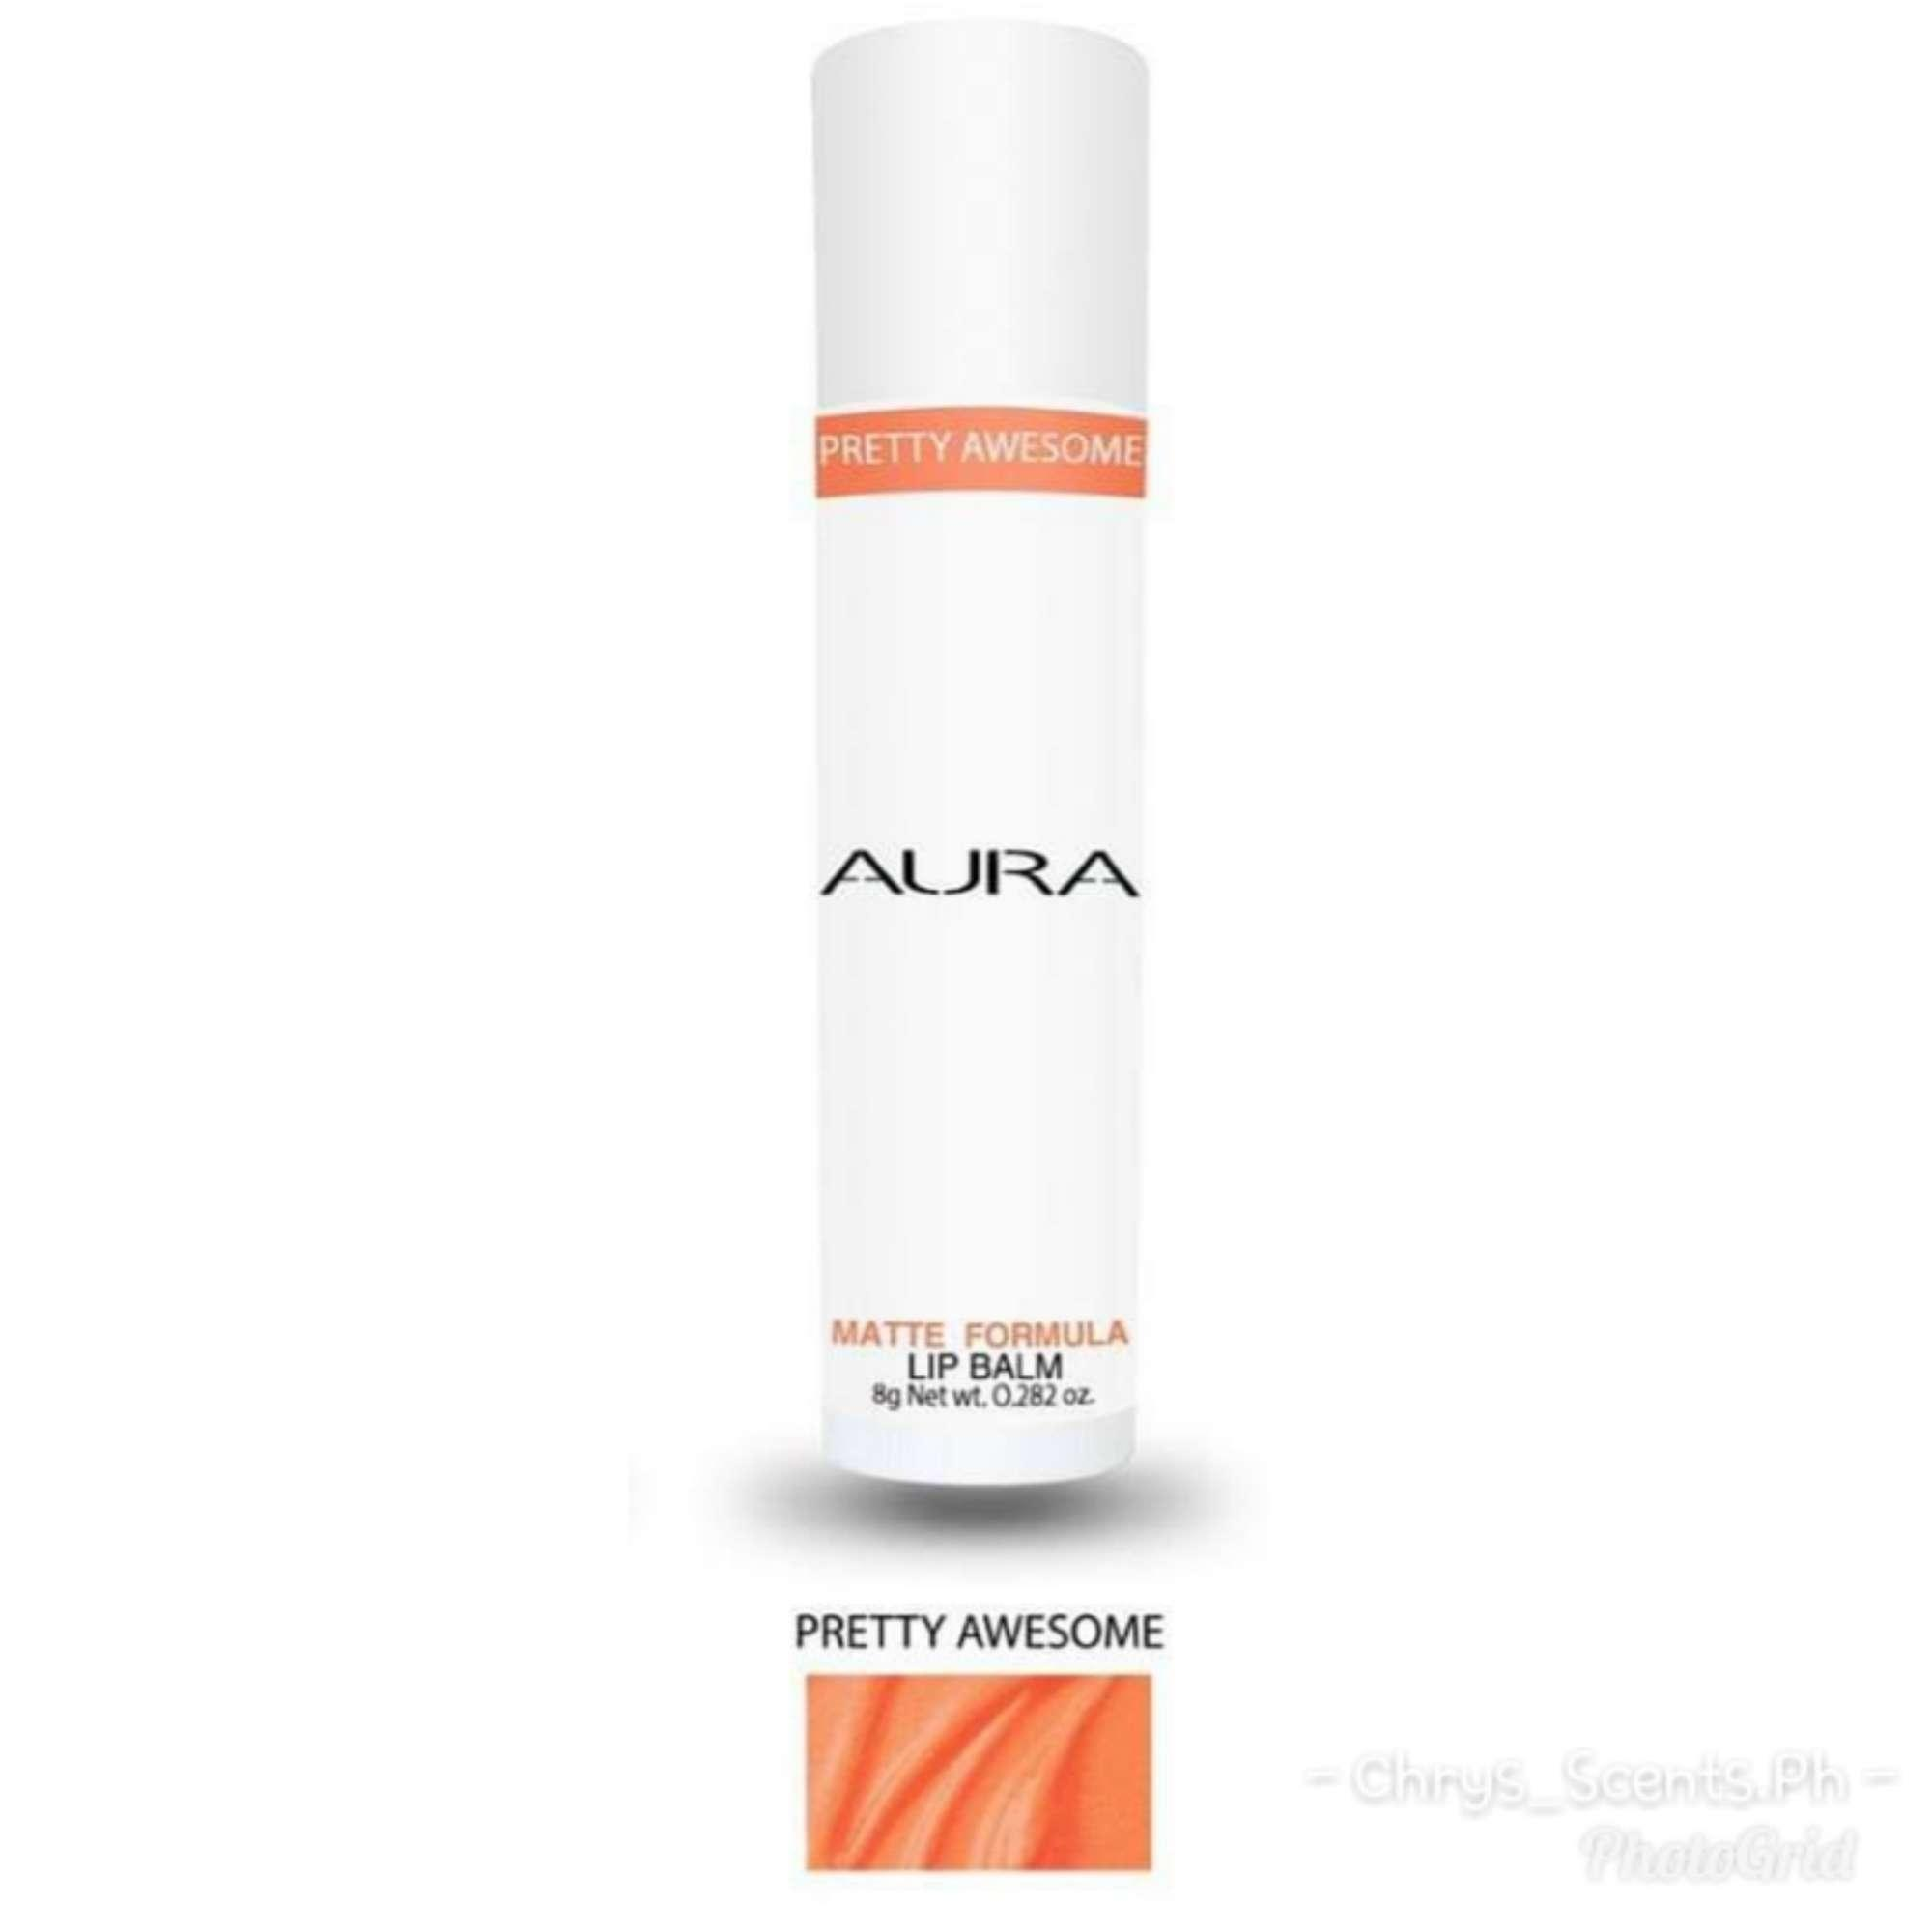 Aura Matte Lip Balm Made with Organic Material and DFA Approved Ingredients Philippines